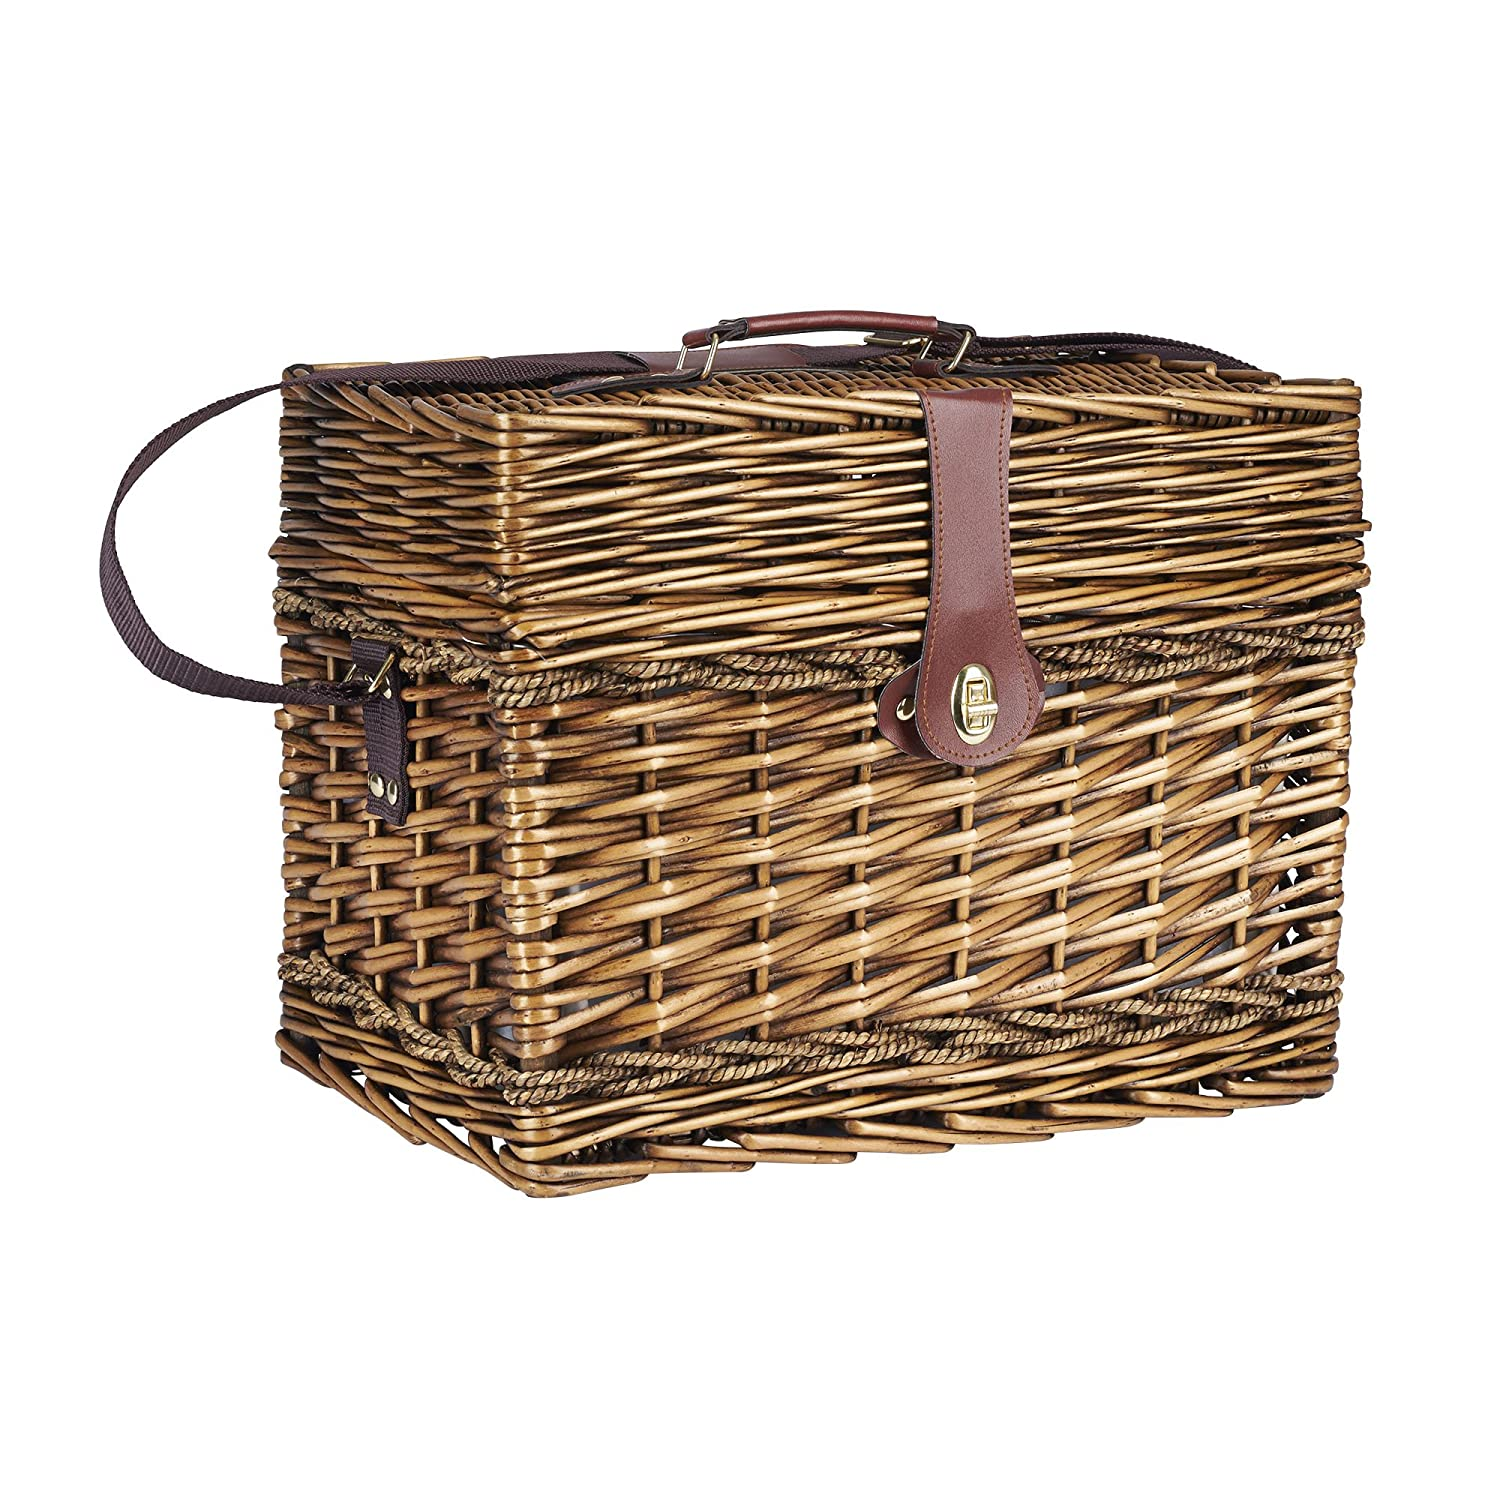 Household Essentials ML-2850 Large Bamboo Wicker Picnic Basket, Light Brown